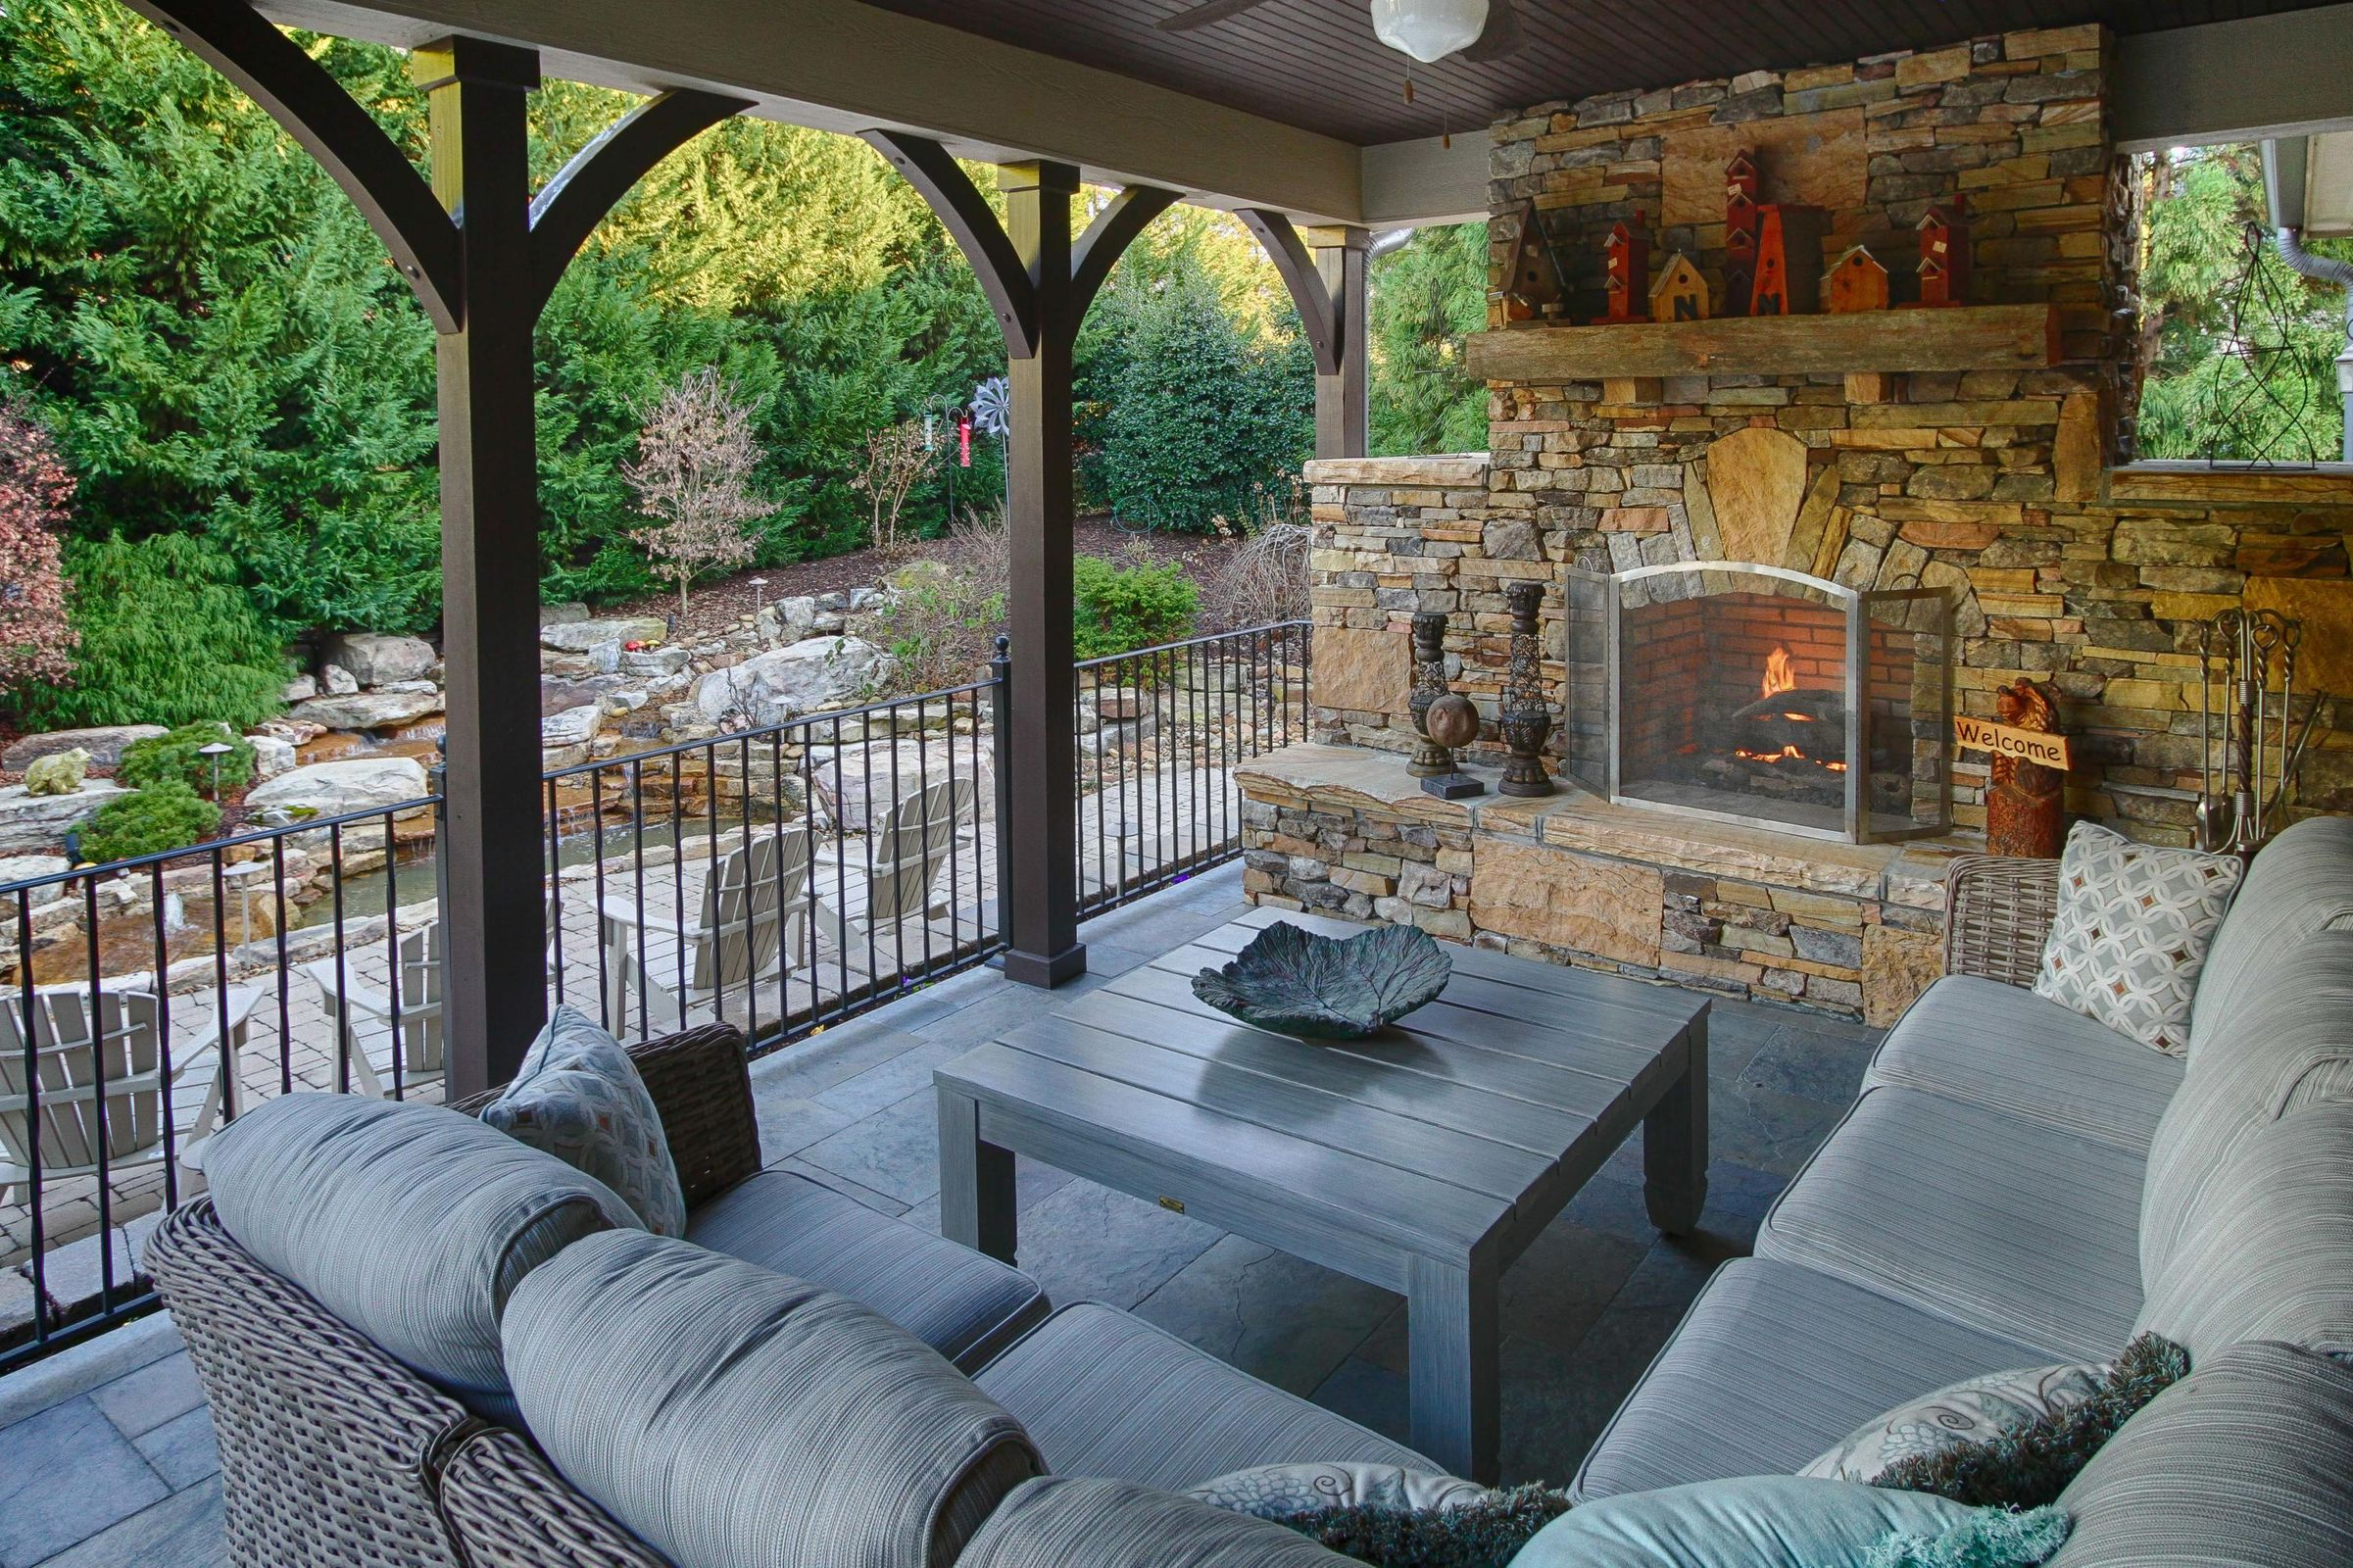 28 - Covered Rear Porch with Fireplace